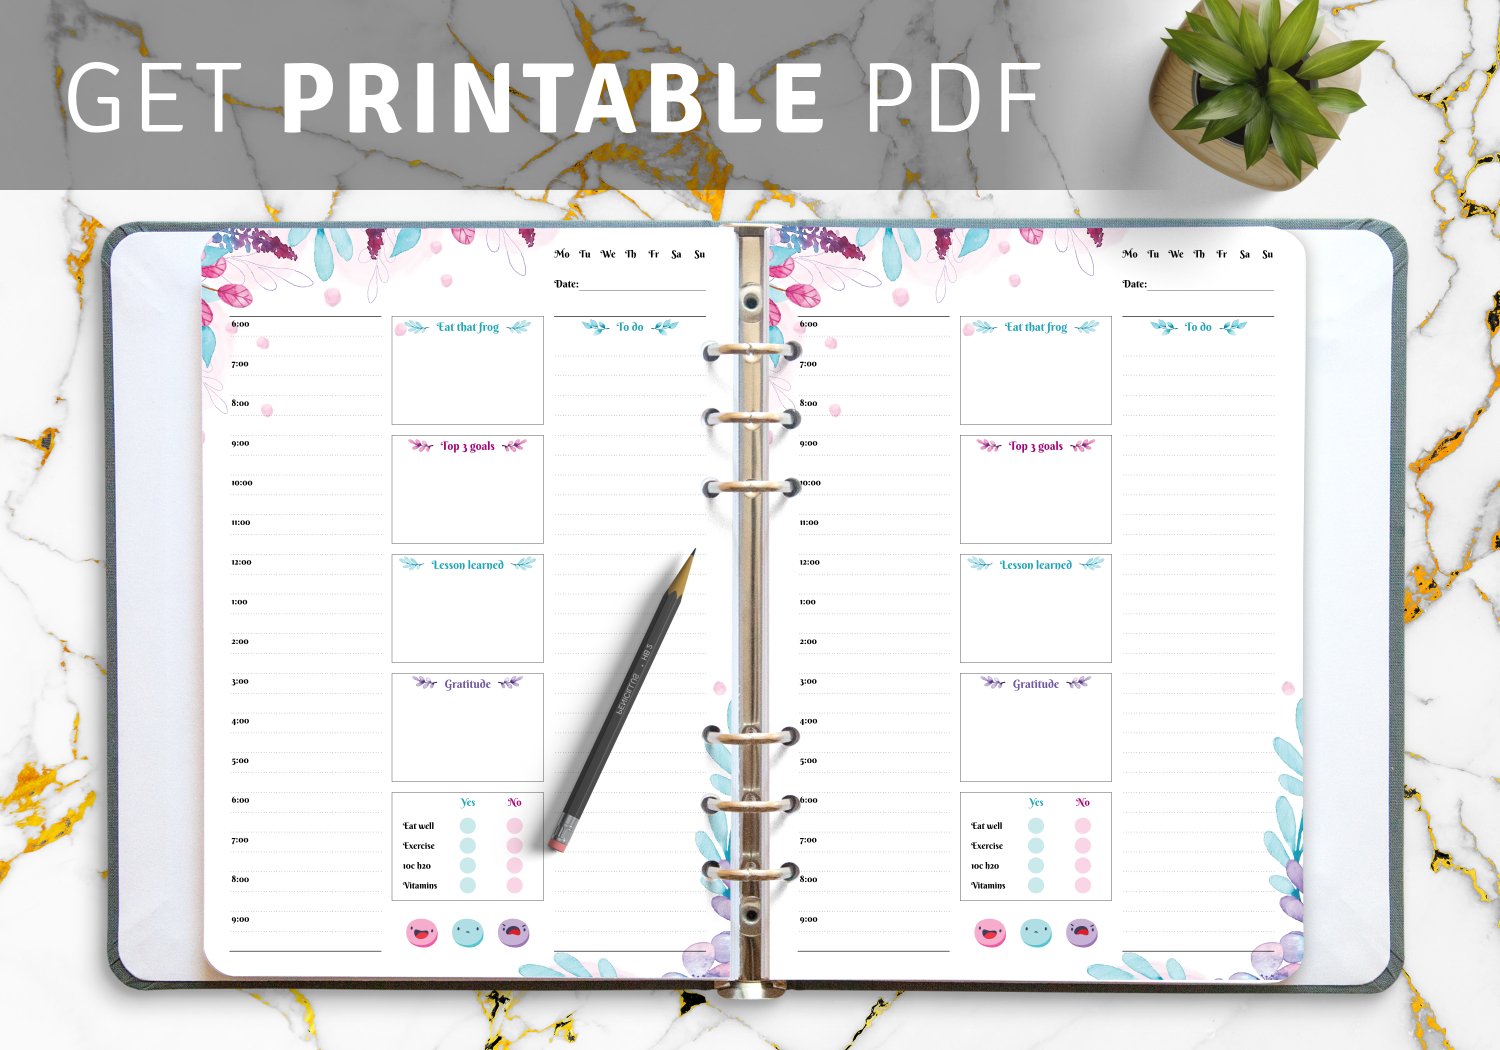 Download Printable Flowered Daily Hourly Planner Pdf intended for Hourly Planner Pdf